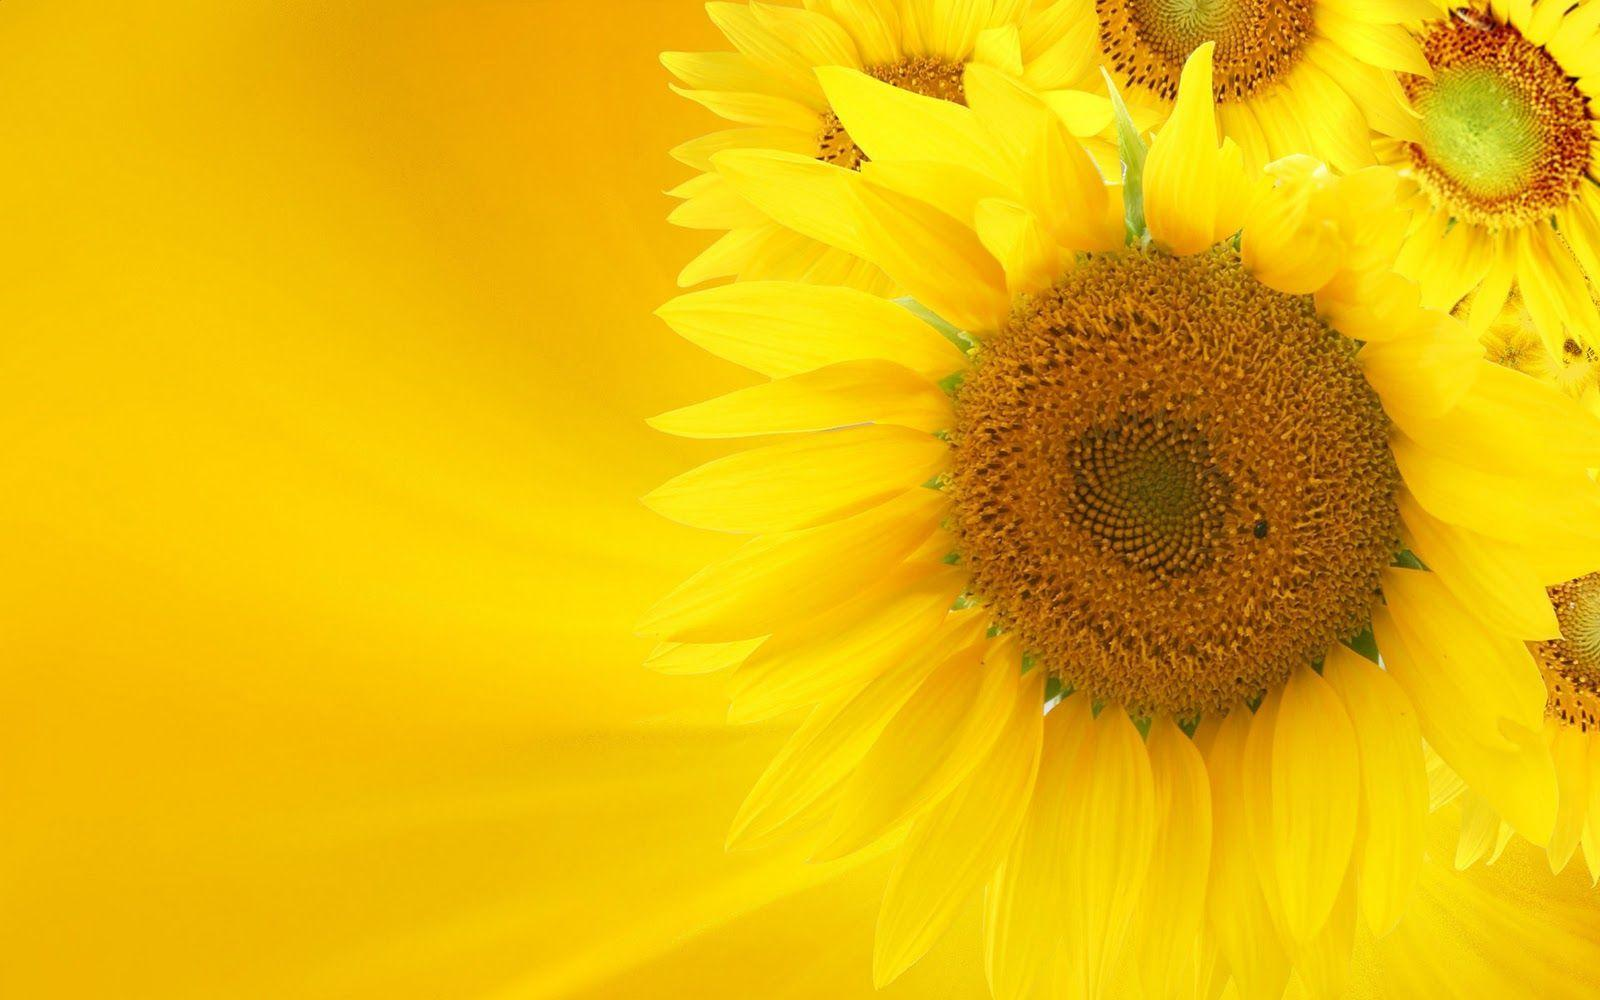 Yellow Sunflowers Wallpaper Photography #11779 Wallpaper ...